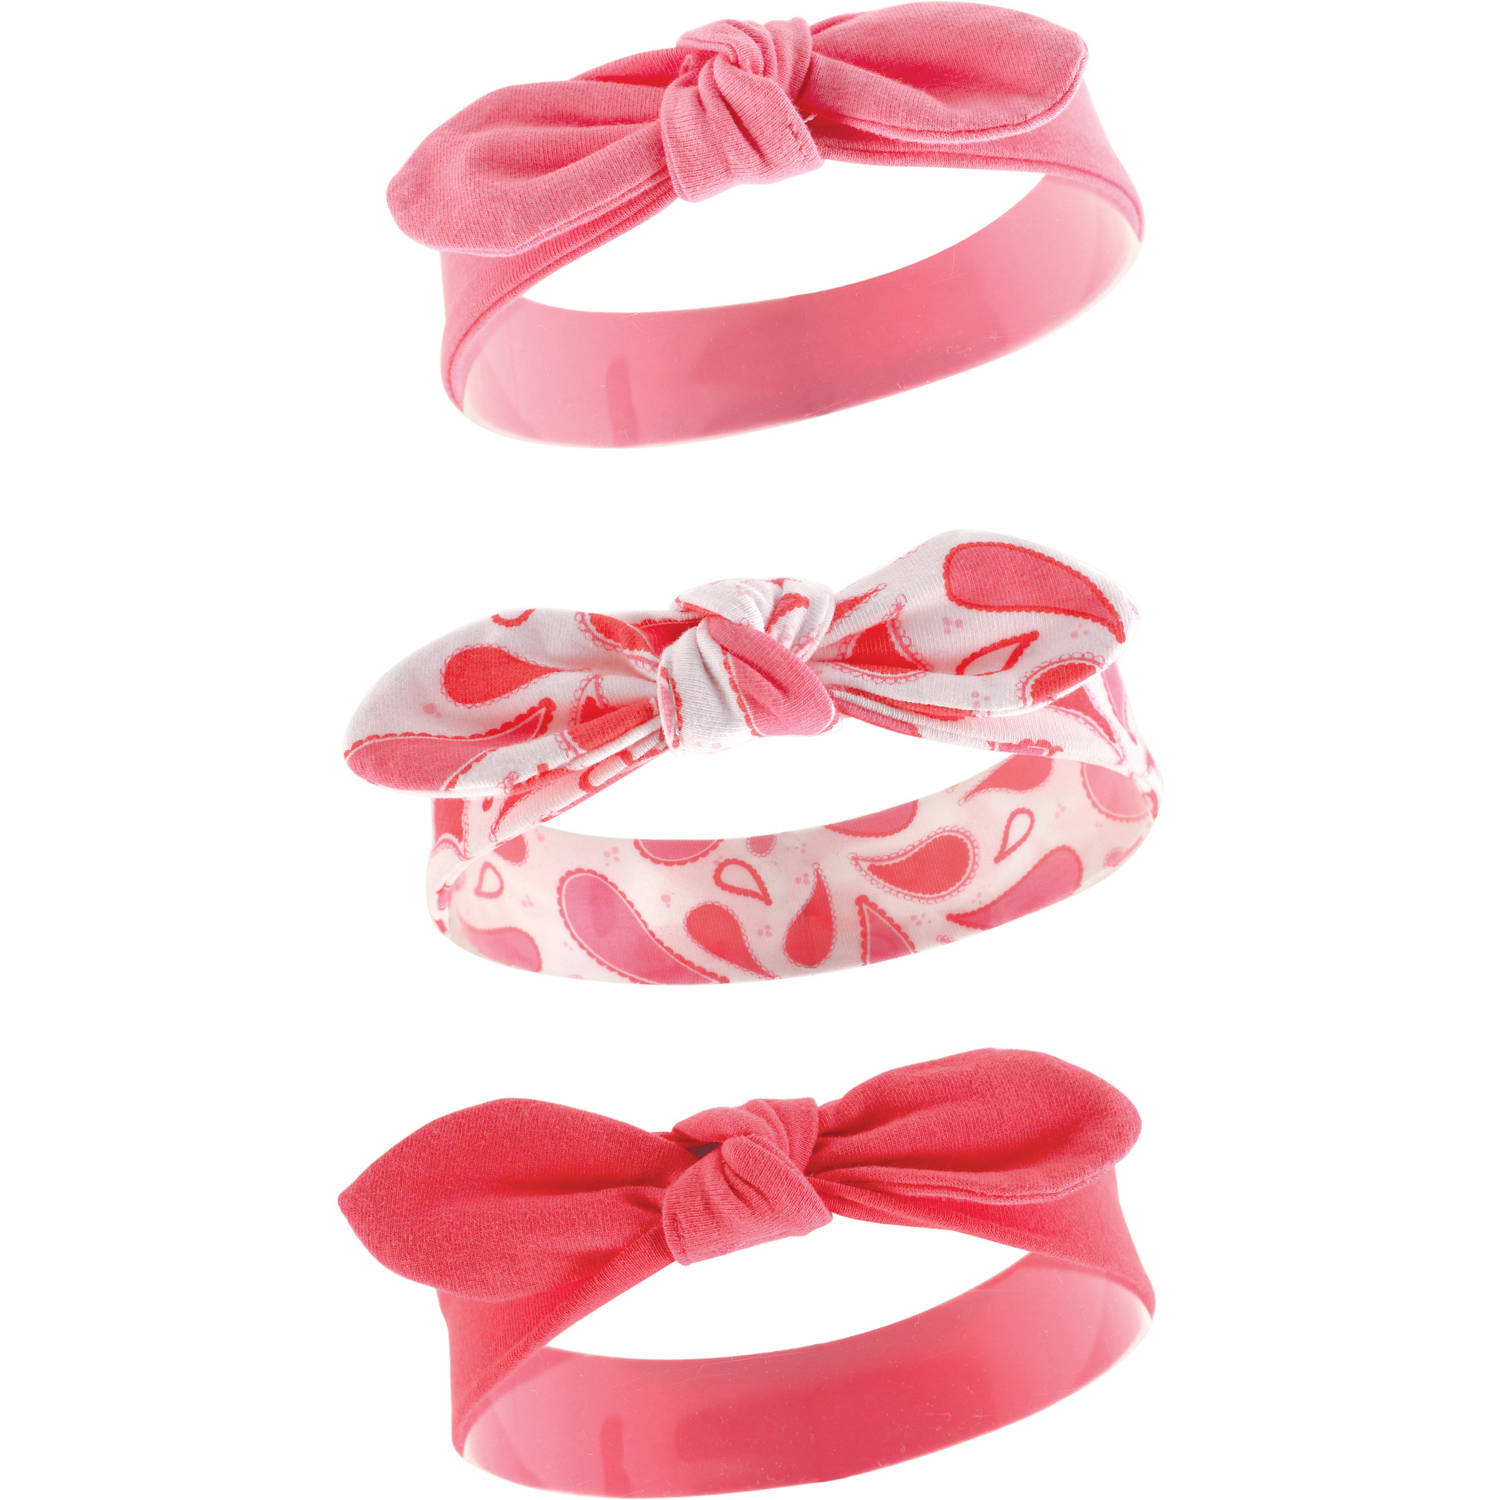 Yoga Sprout Toddler Baby Girls Headband 3-Pack - Paisley